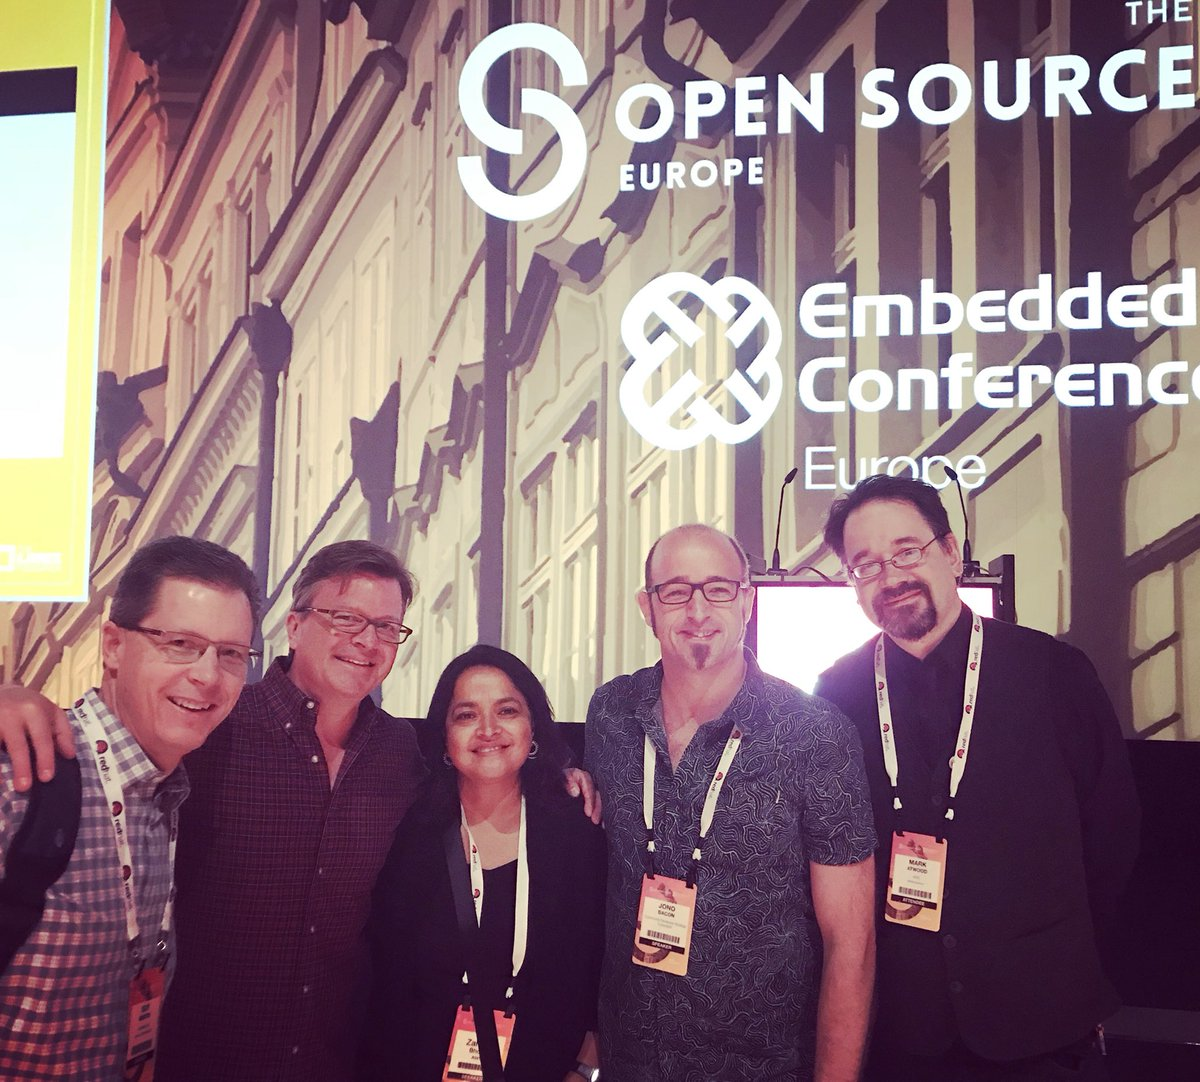 Great to be in Prague with this #opensource rabble at #OSSummit  @guyma @jzemlin @zahedab @jonobacon @FallenPegasus https://t.co/oKhswGYDxJ